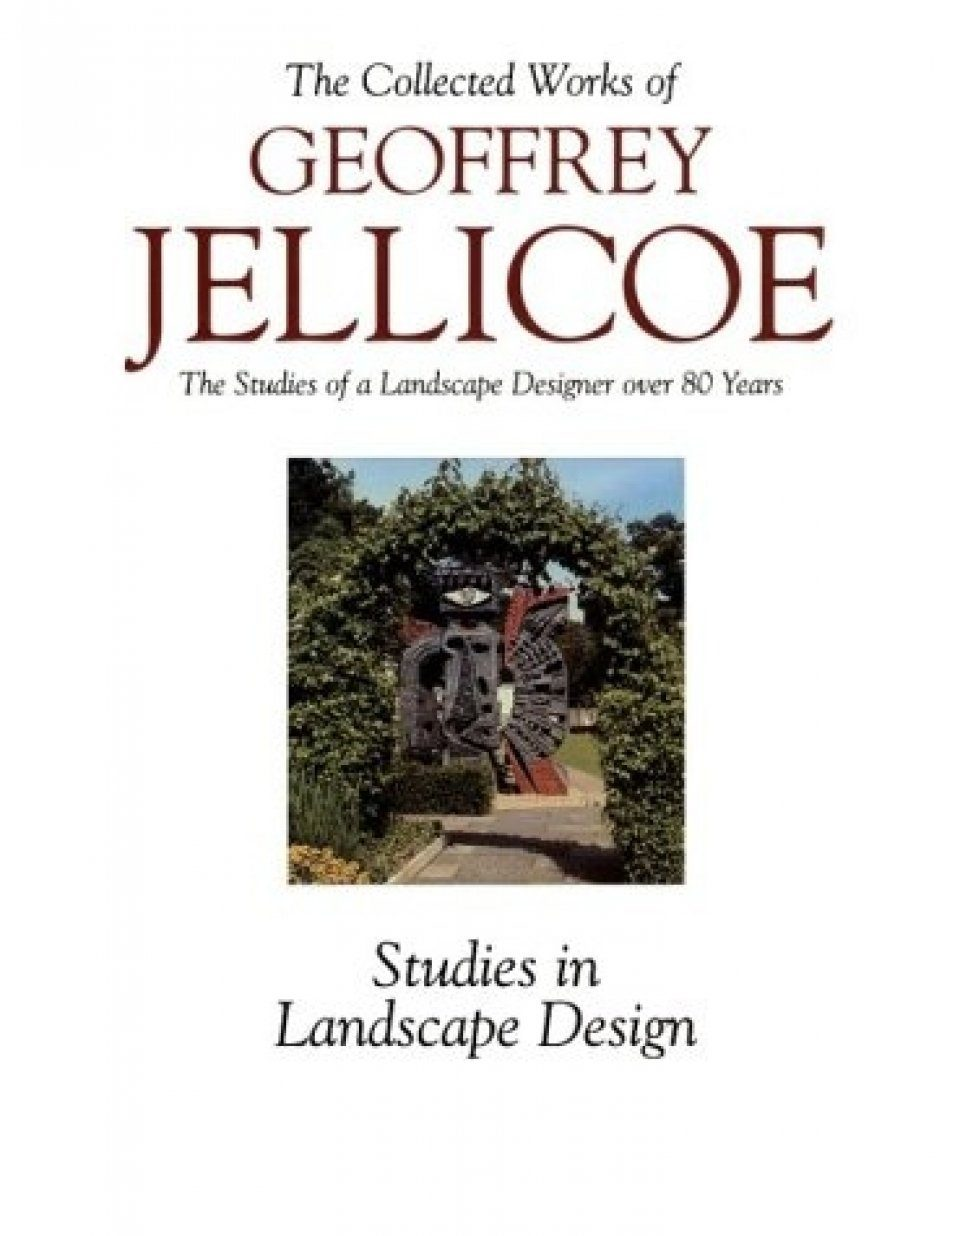 Geoffrey Jellicoe – The Studies of a Landscape Designer Over 80 Years, Volume 3